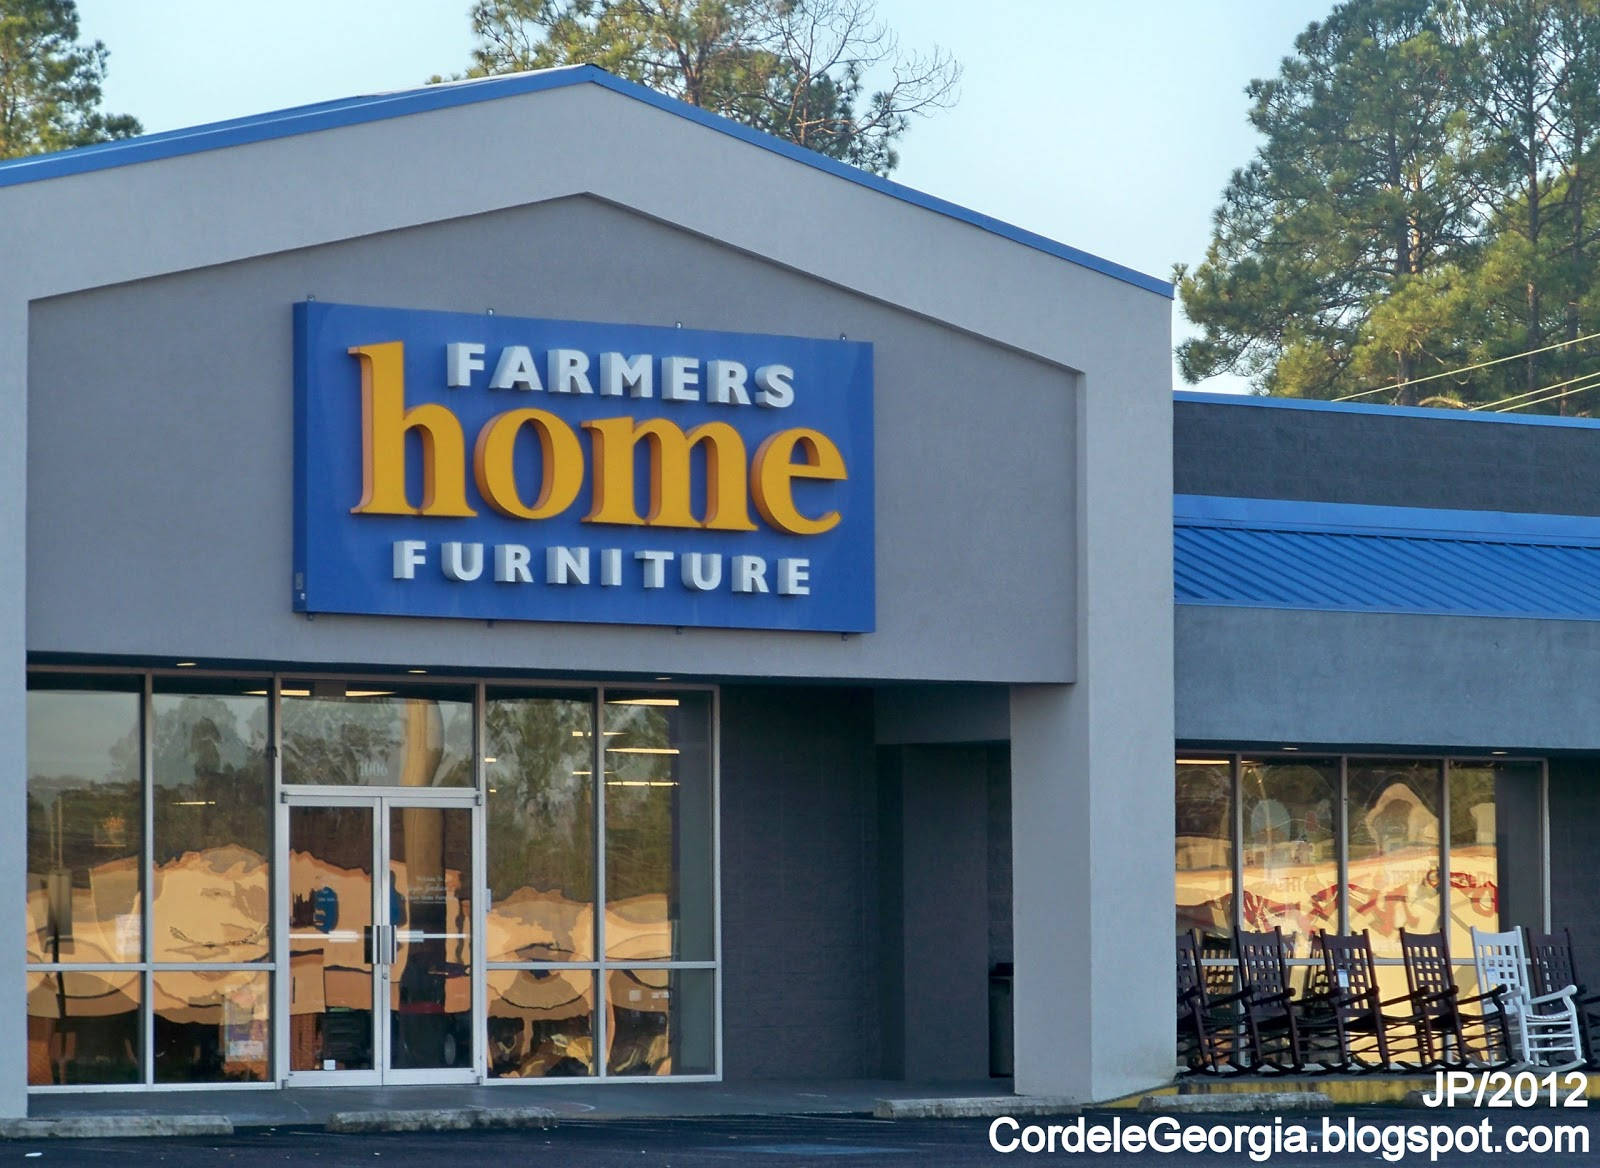 Cordele georgia crisp watermelon restaurant attorney bank for Home decor furniture stores